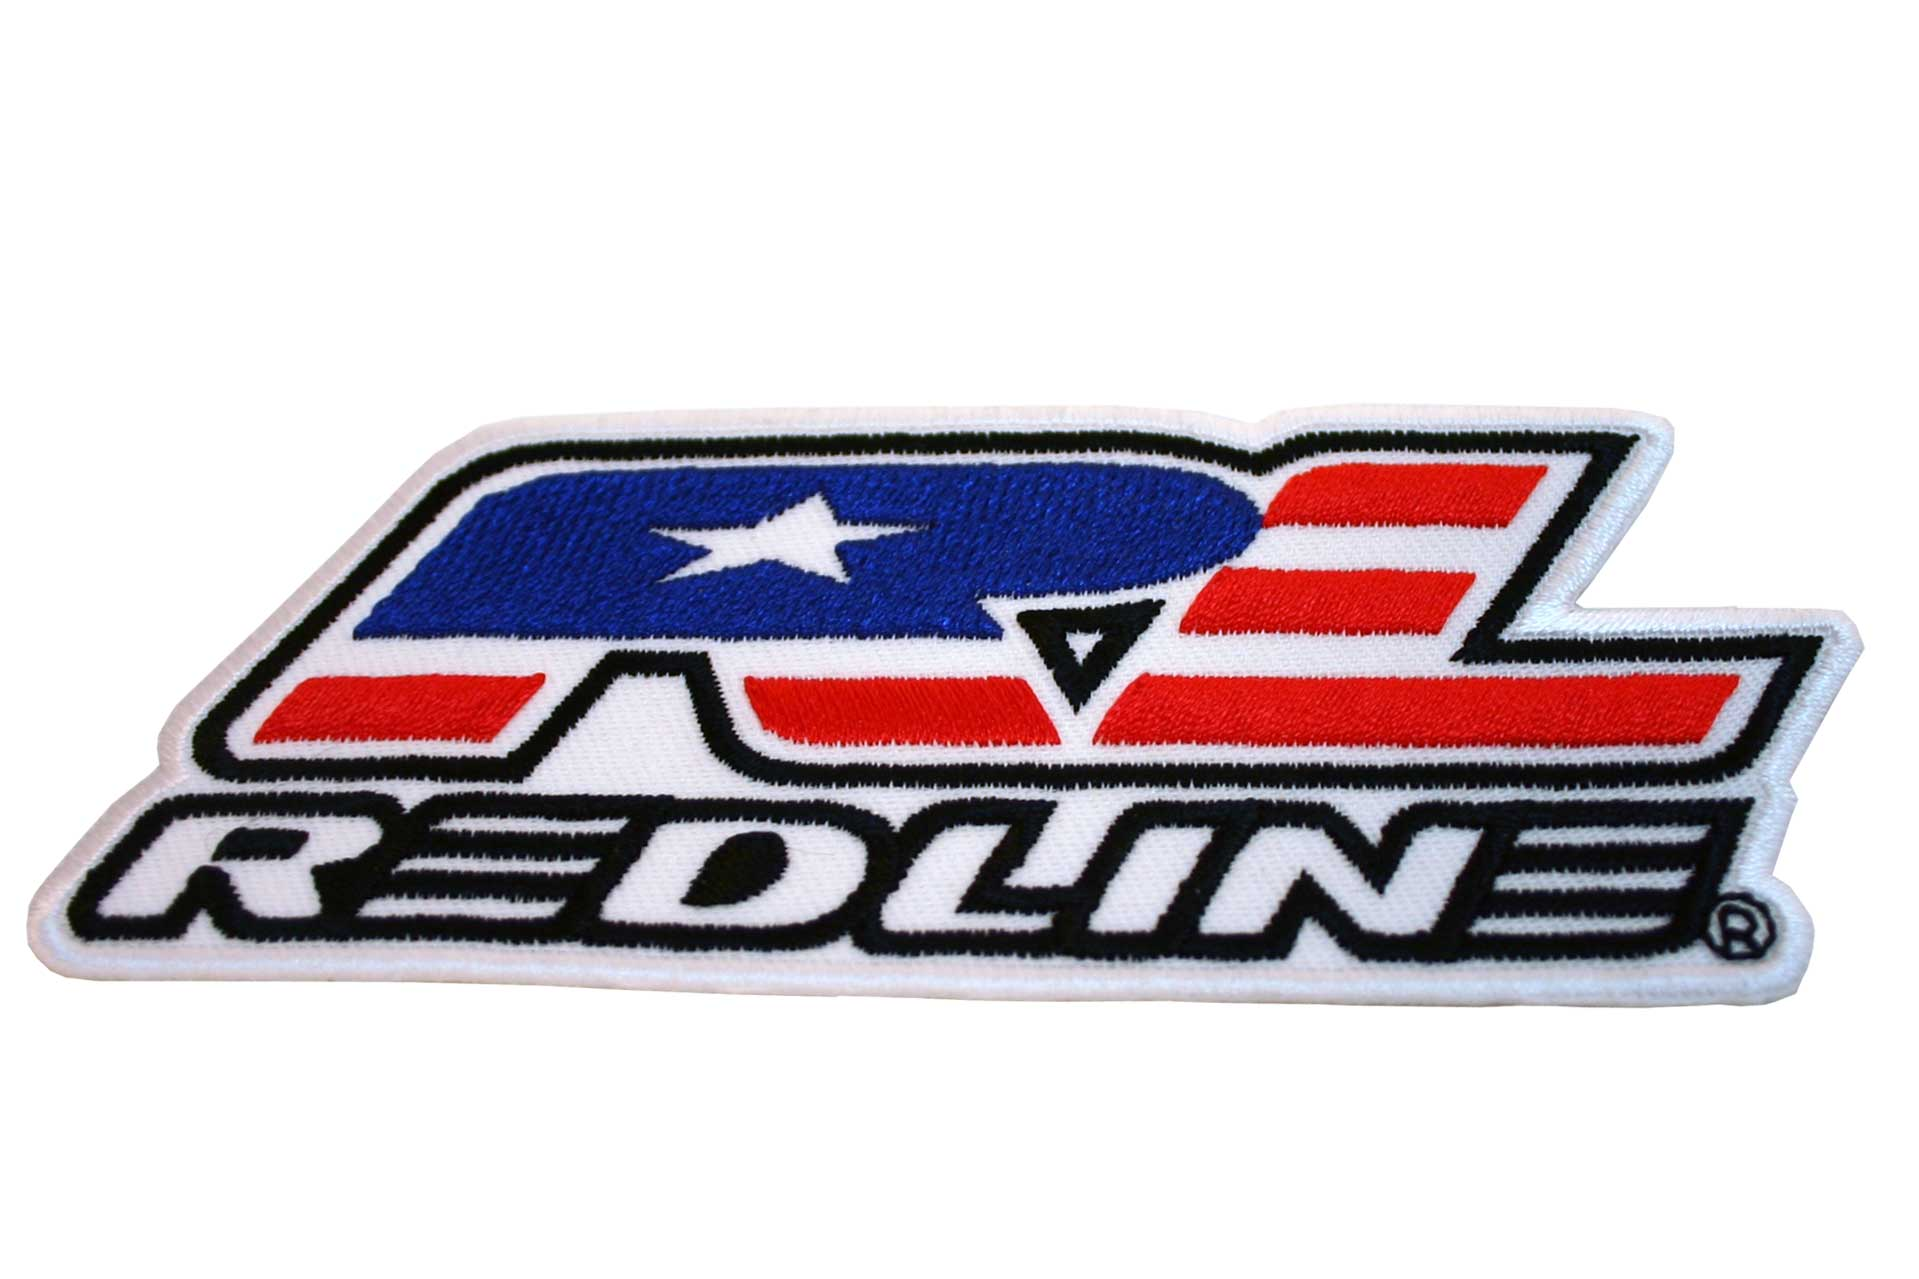 Rl Usa Logo Patch Rlga318 02 Product Information Lookup Bmx International